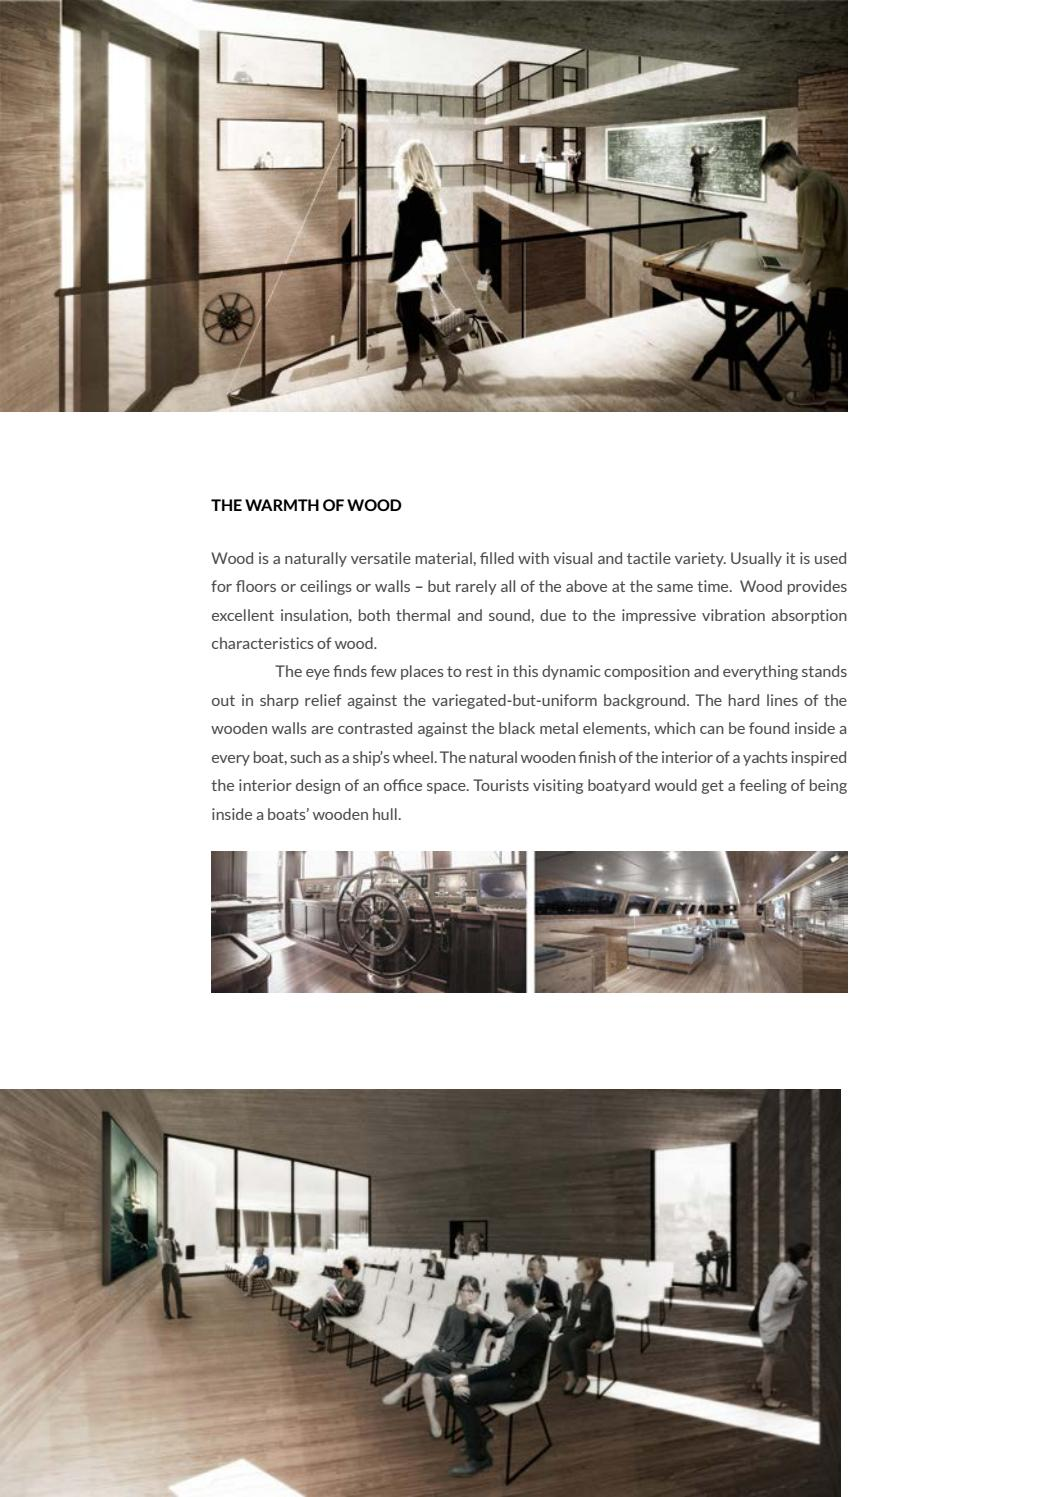 Designs Of The Interior Glamorous Artur Zakrzewski  Part 1 Architecture Portfolioartur